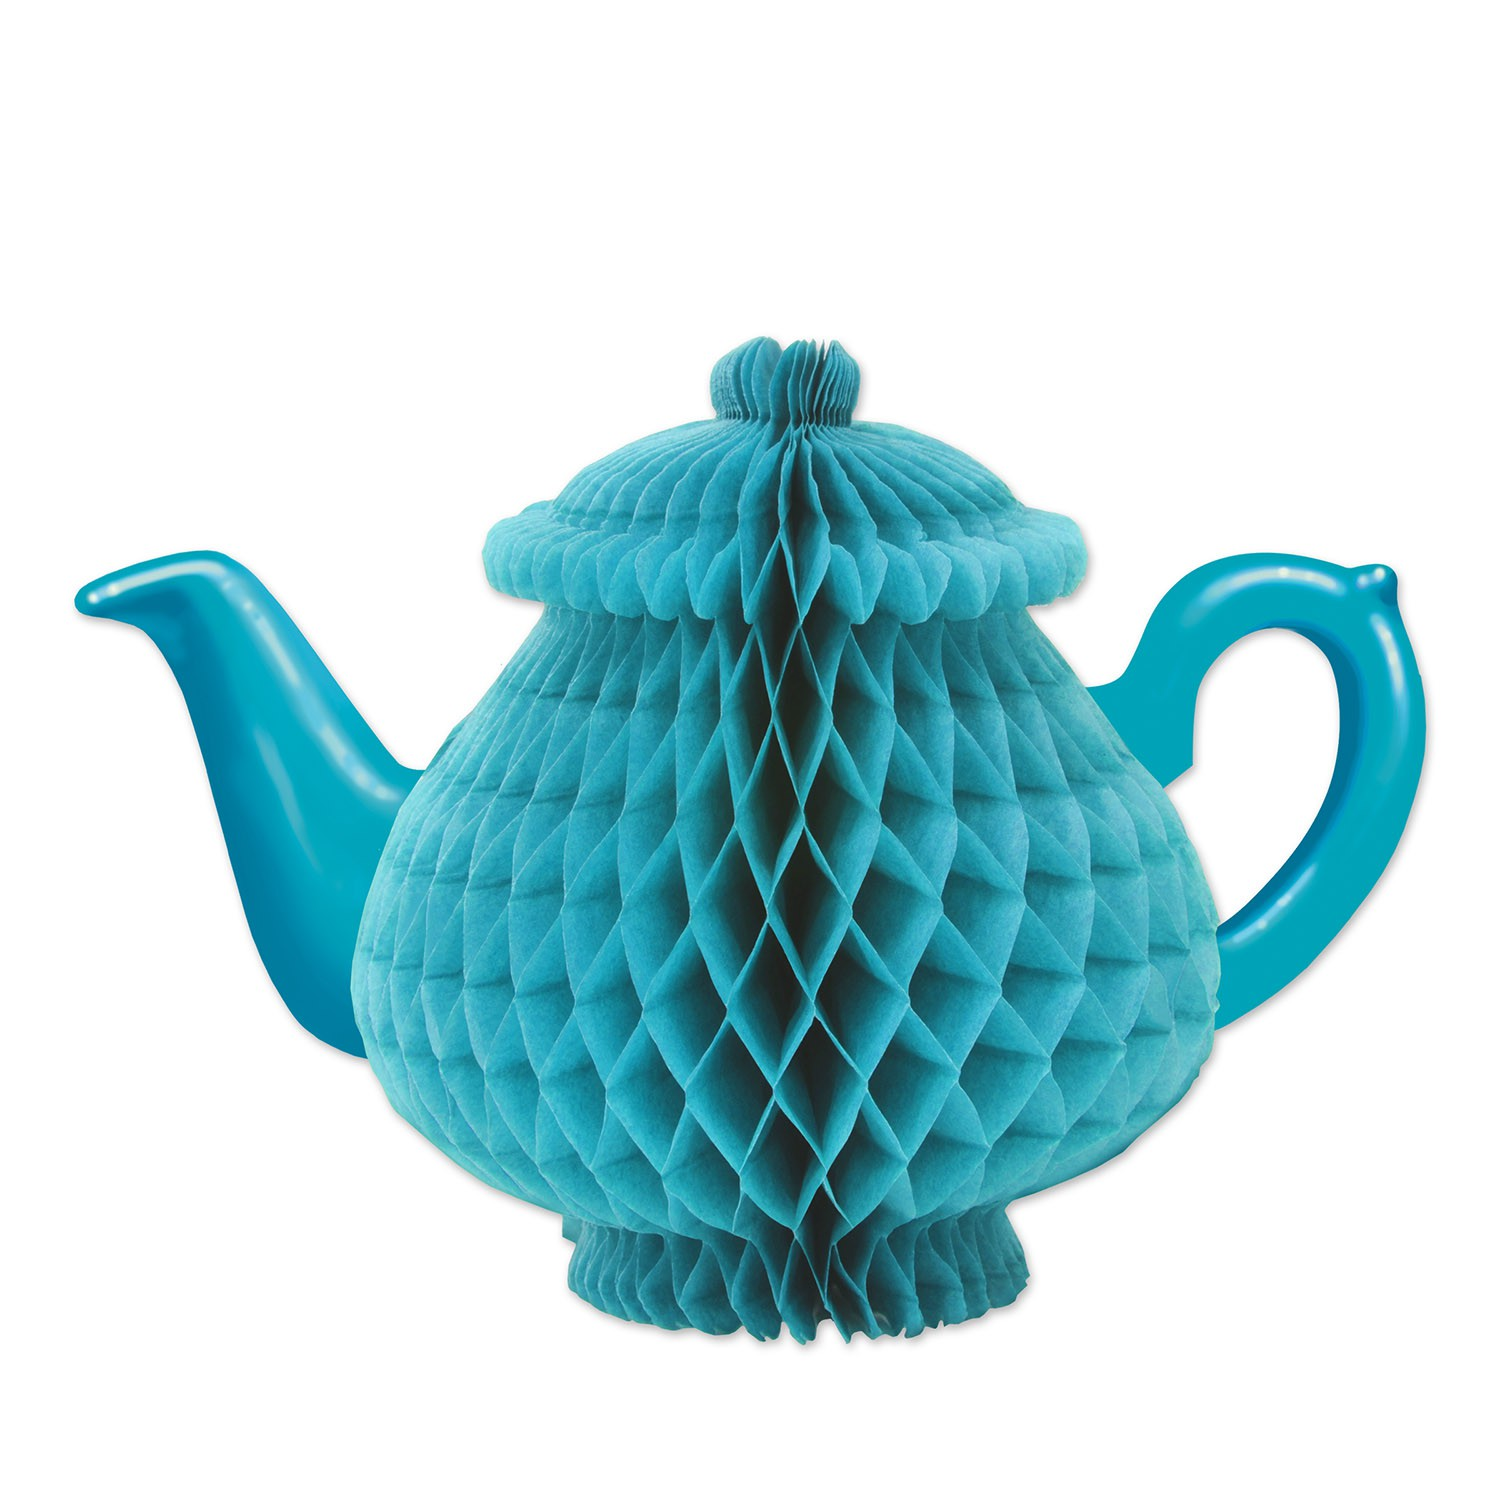 ALICE IN WONDERLAND STYLE TEAPOT HONEYCOMB CENTREPIECE